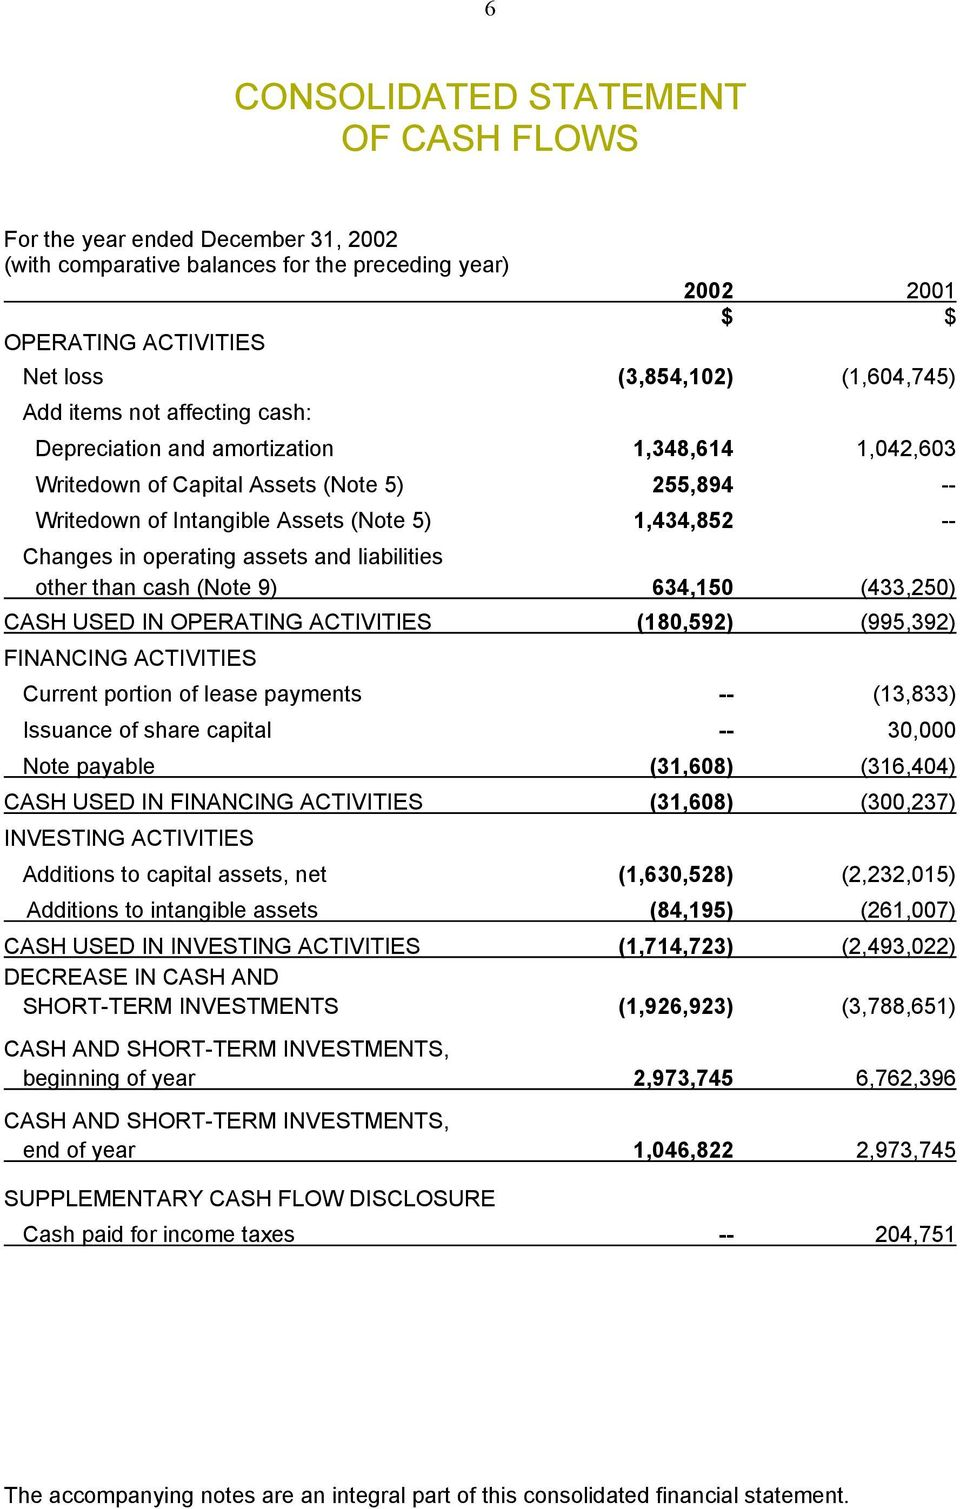 assets and liabilities other than cash (Note 9) 634,150 (433,250) CASH USED IN OPERATING ACTIVITIES (180,592) (995,392) FINANCING ACTIVITIES Current portion of lease payments -- (13,833) Issuance of